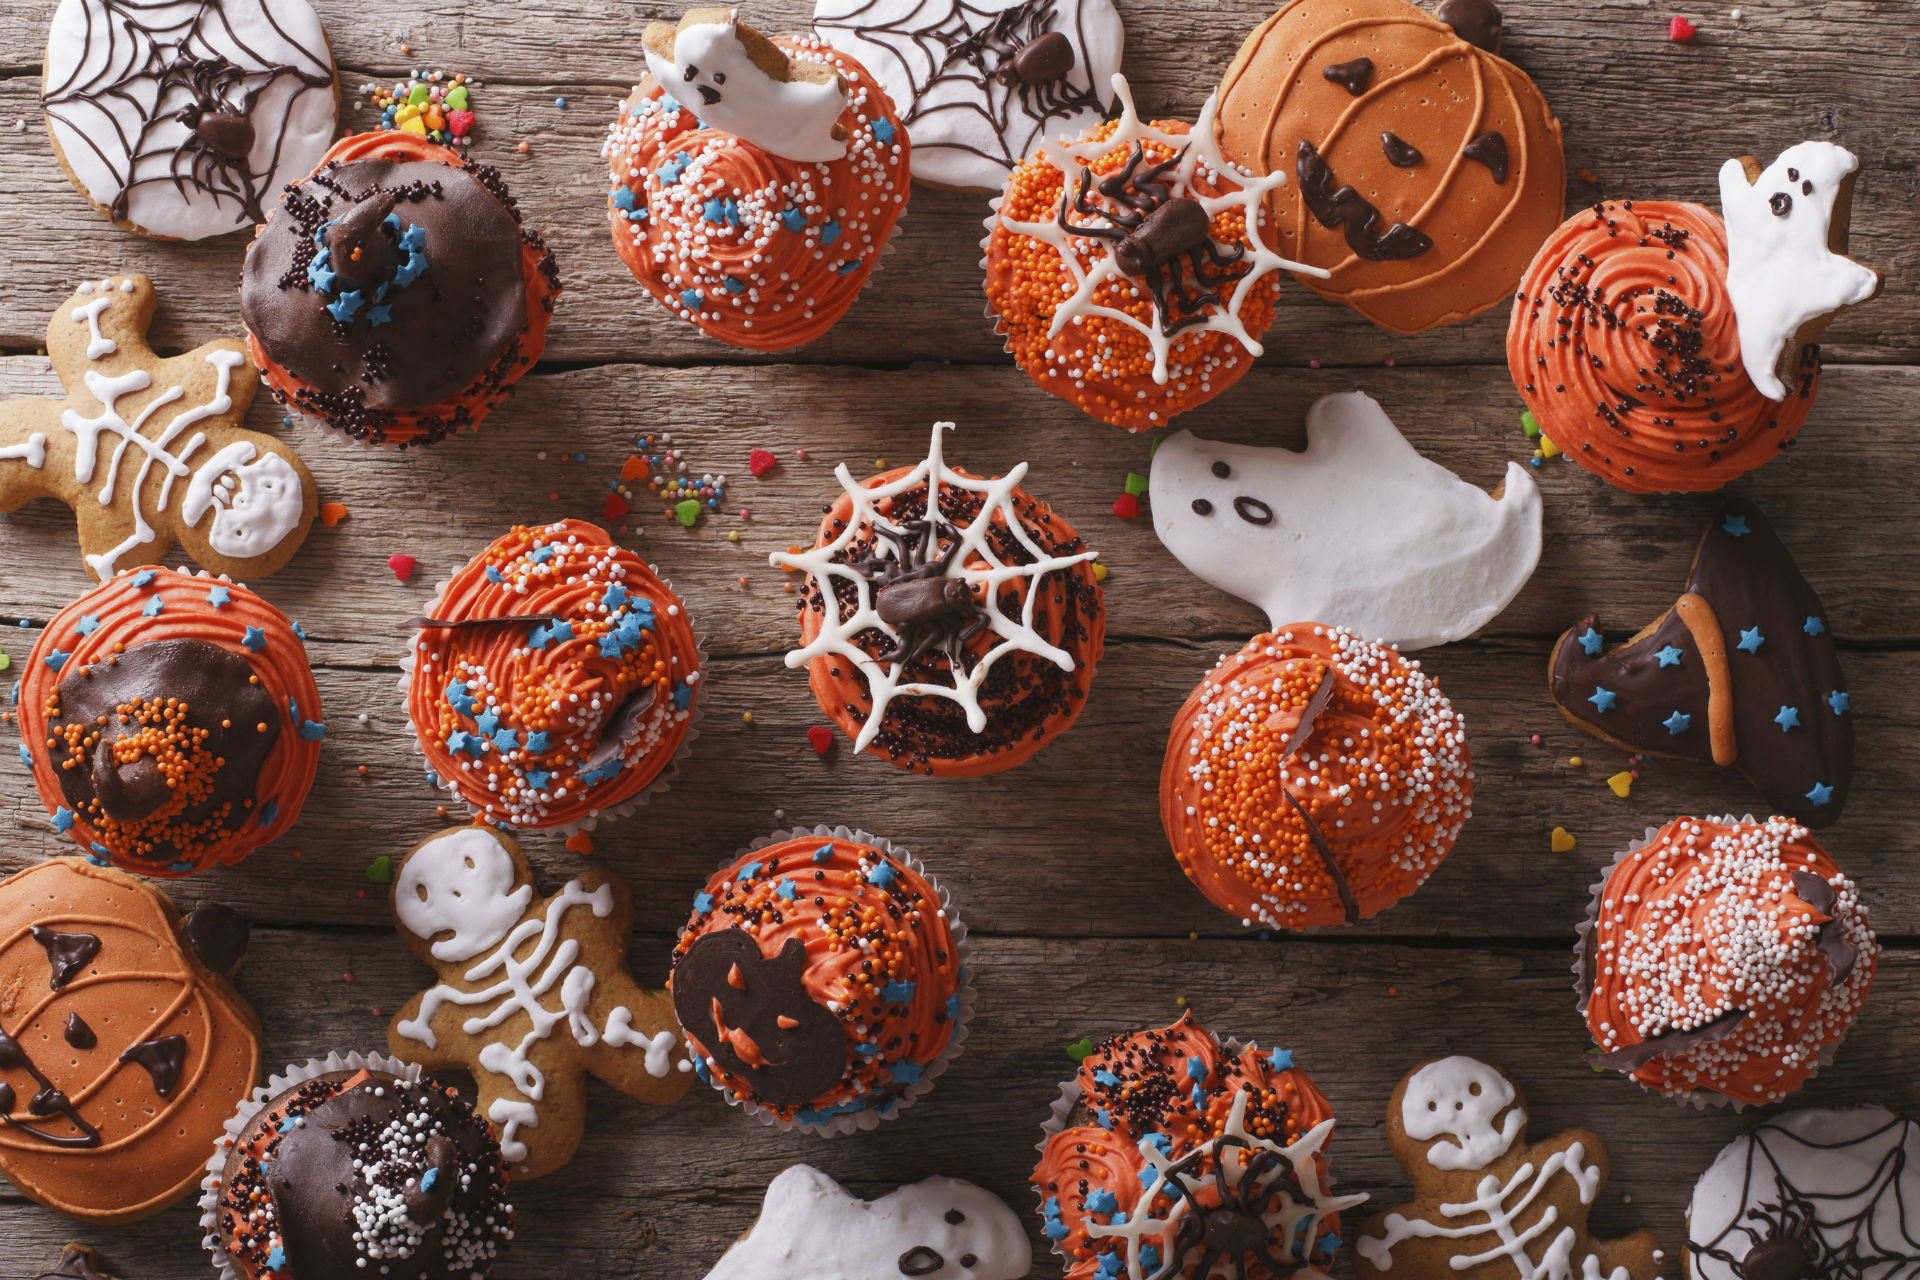 Halloween Cakes- Resized